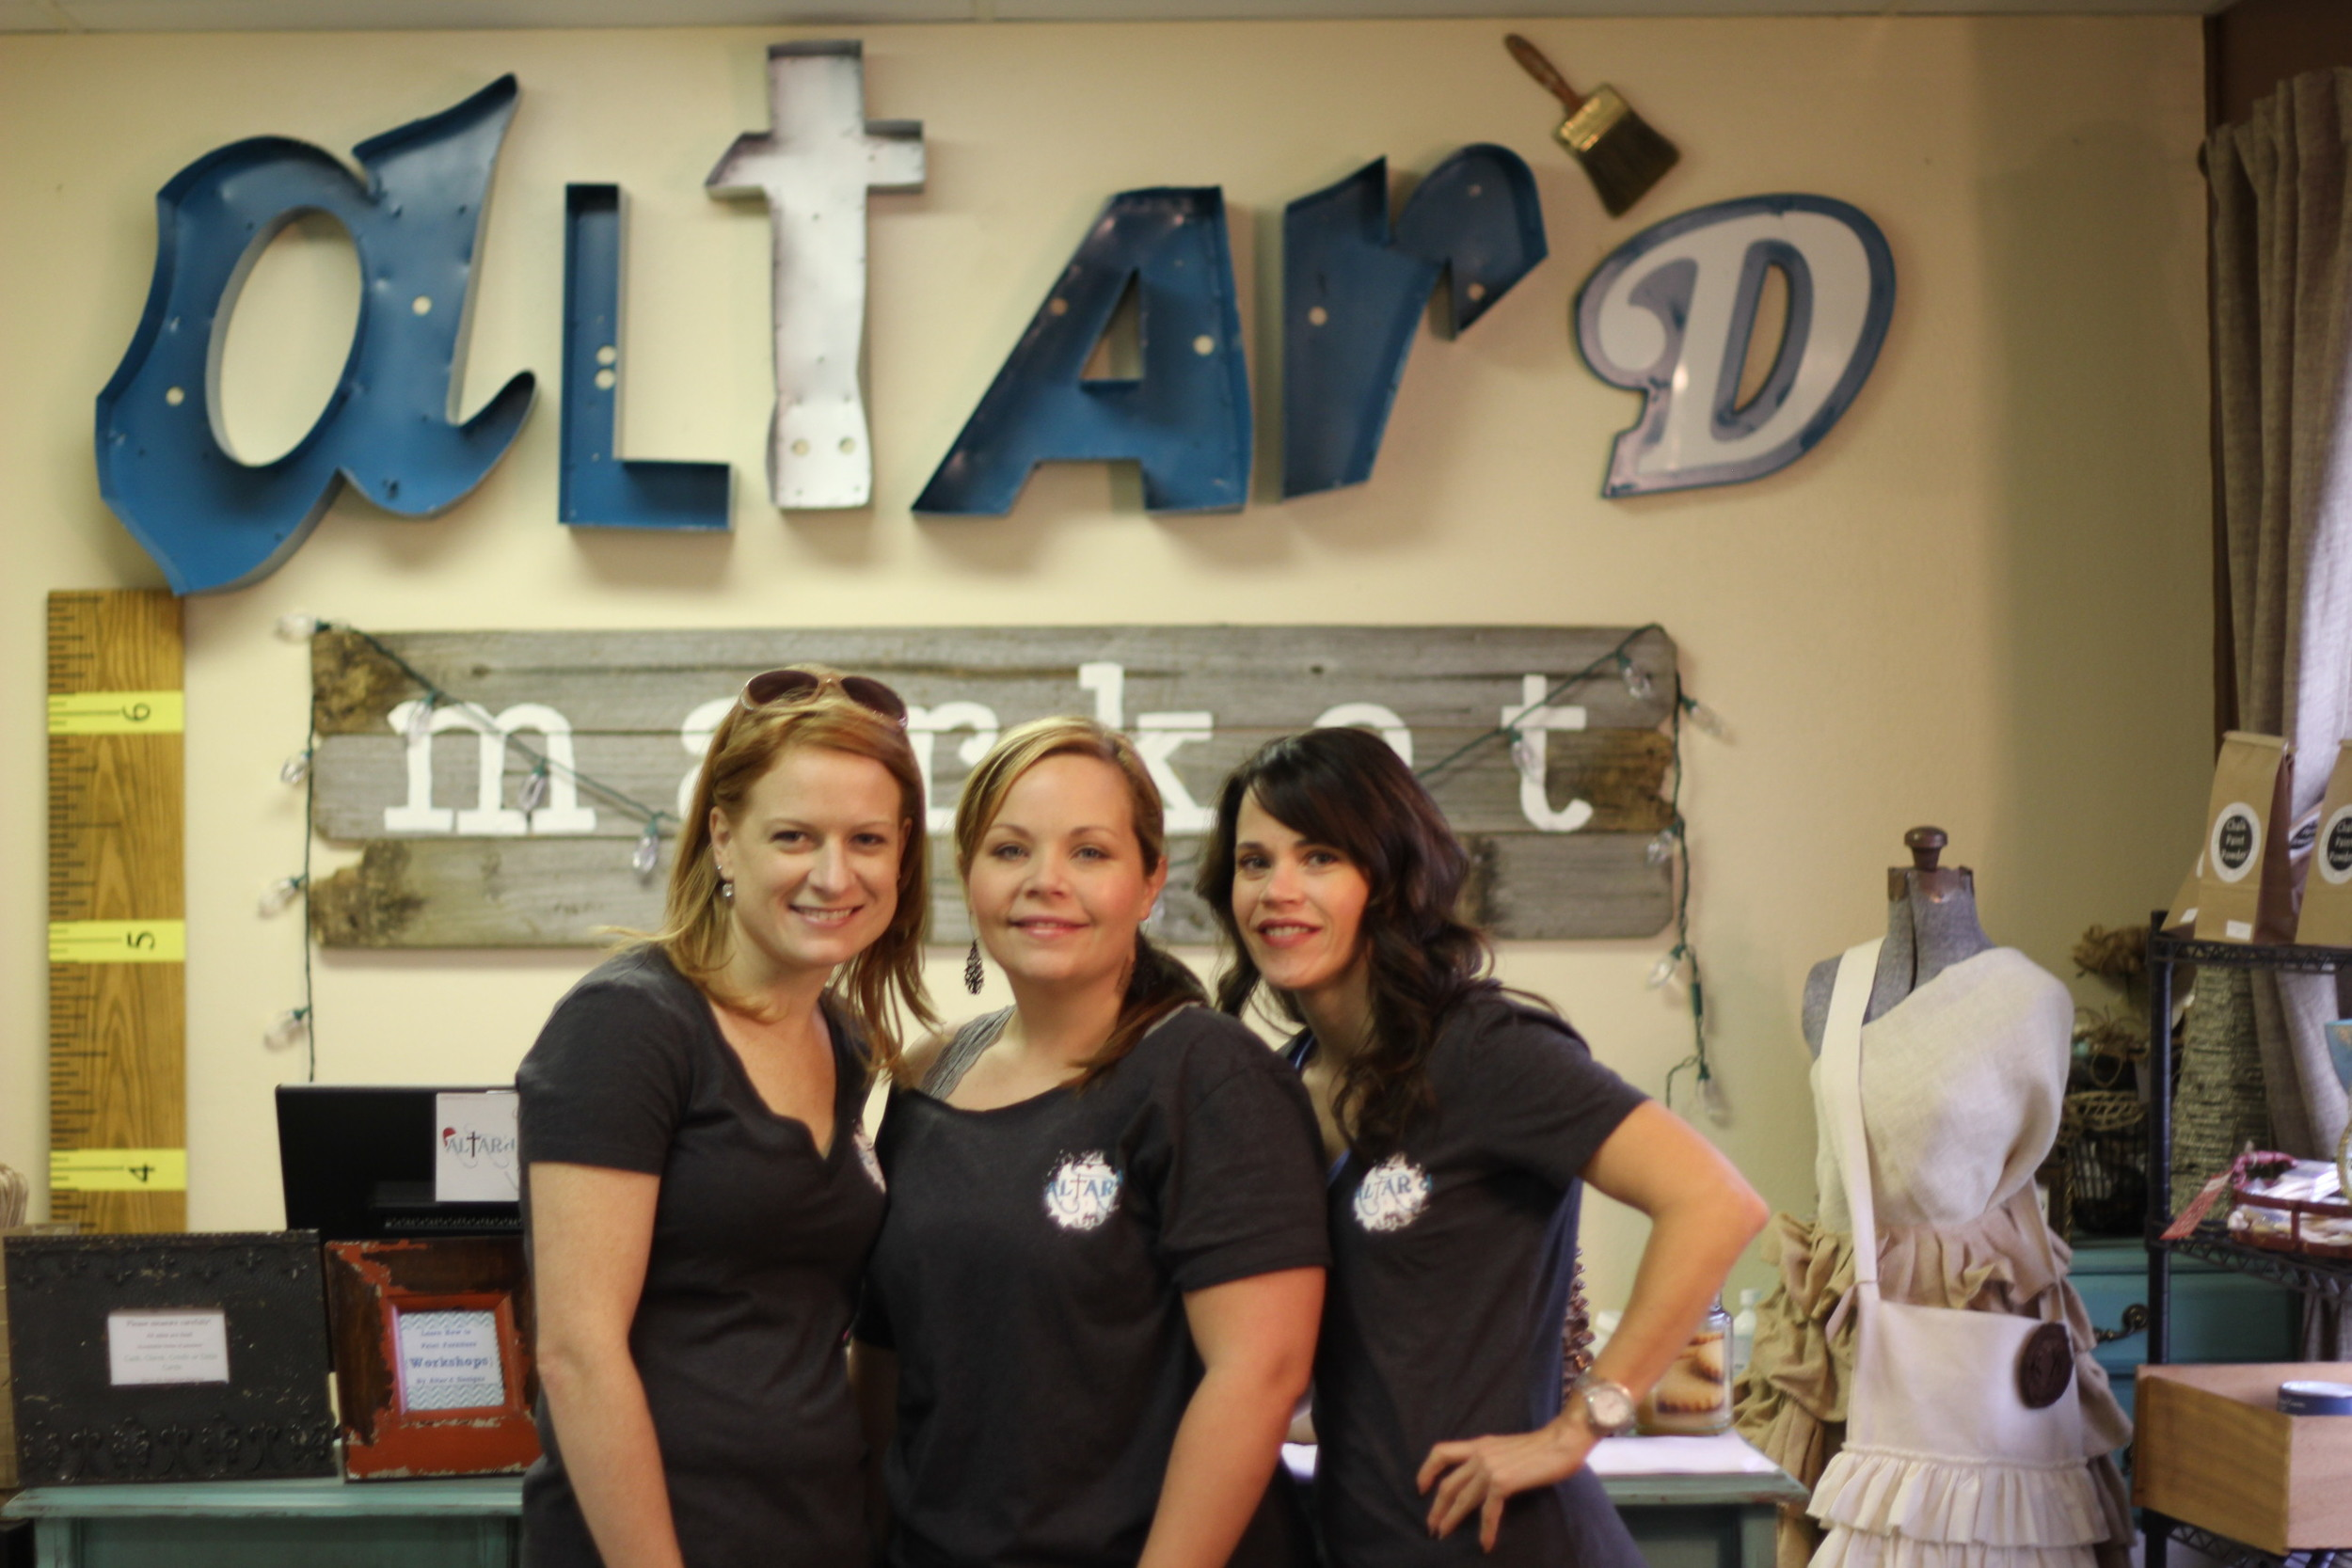 From left: Scottie, Mandie, Amy in our matching Altar'd shirts!